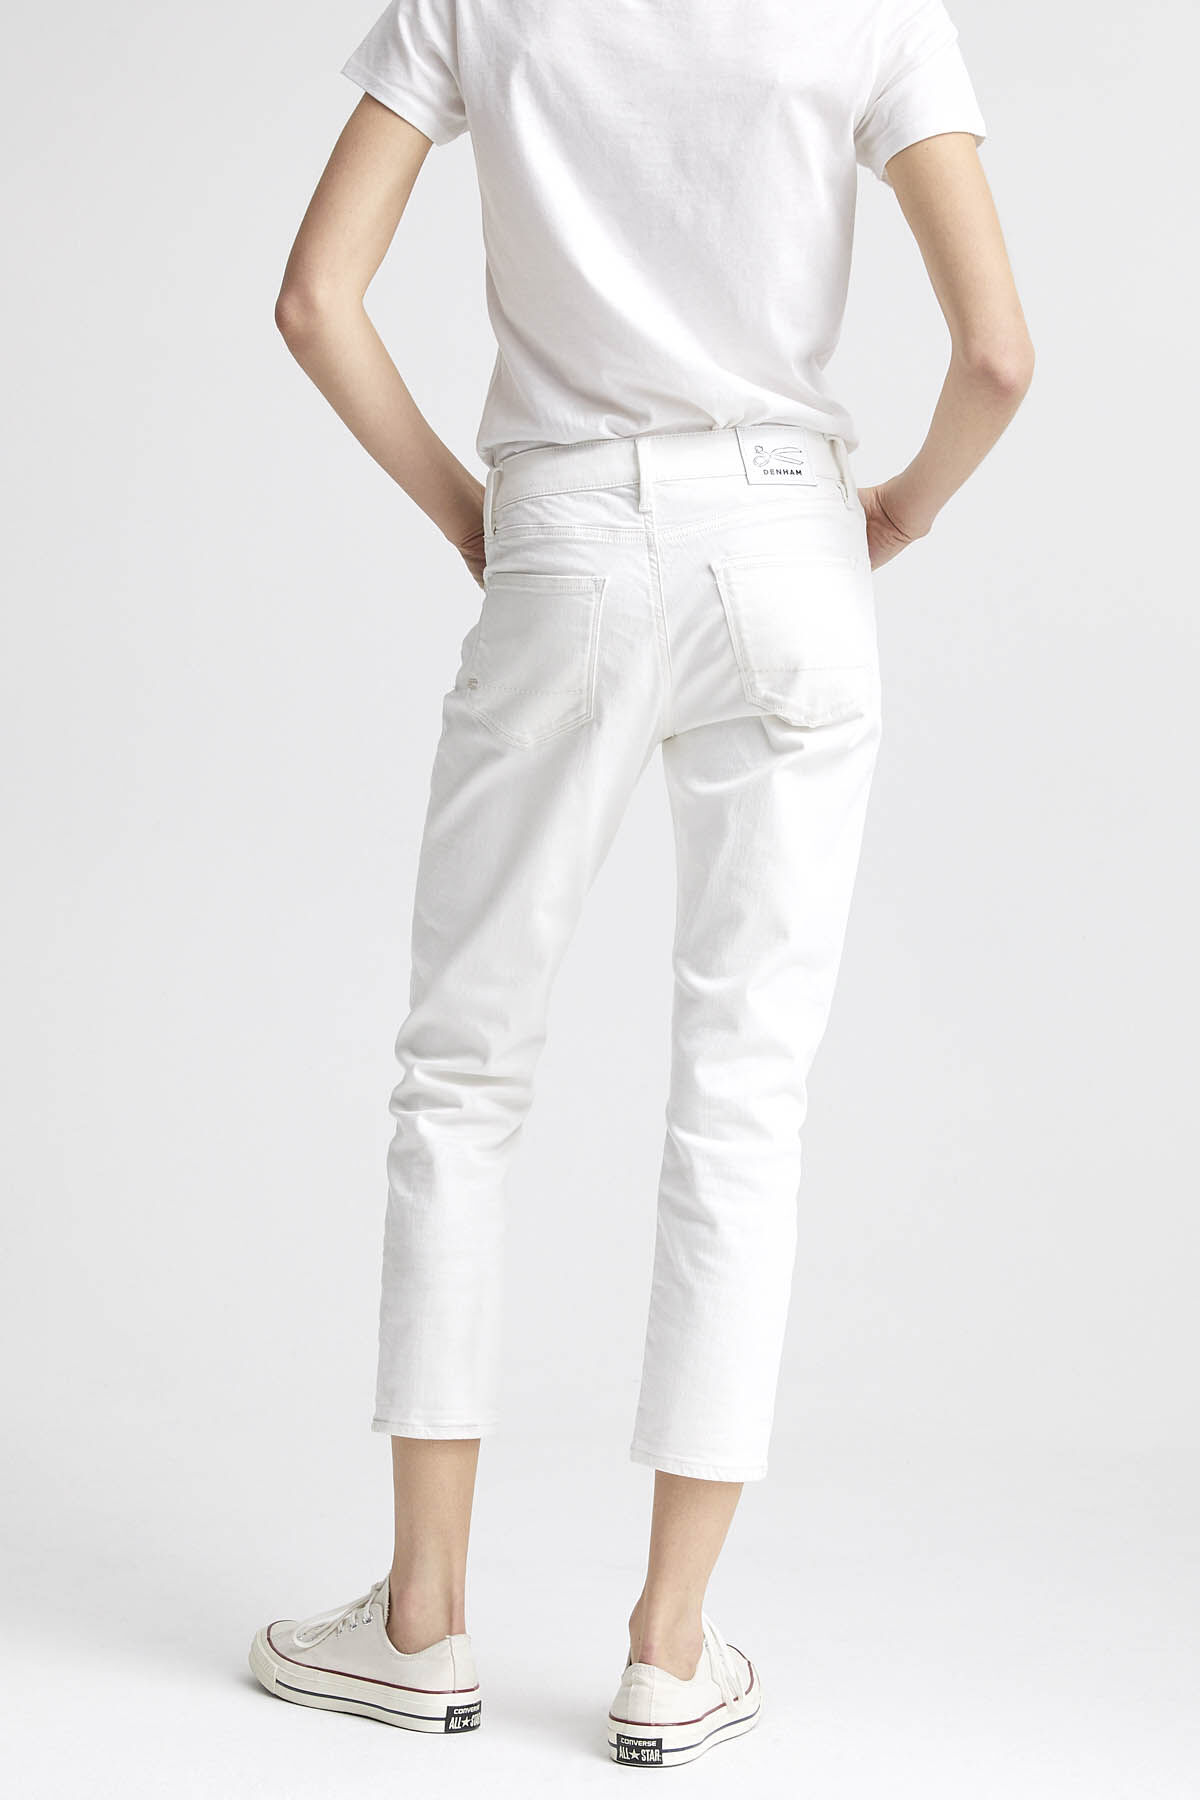 MONROE White Clean Finish Denim - Girlfriend Fit